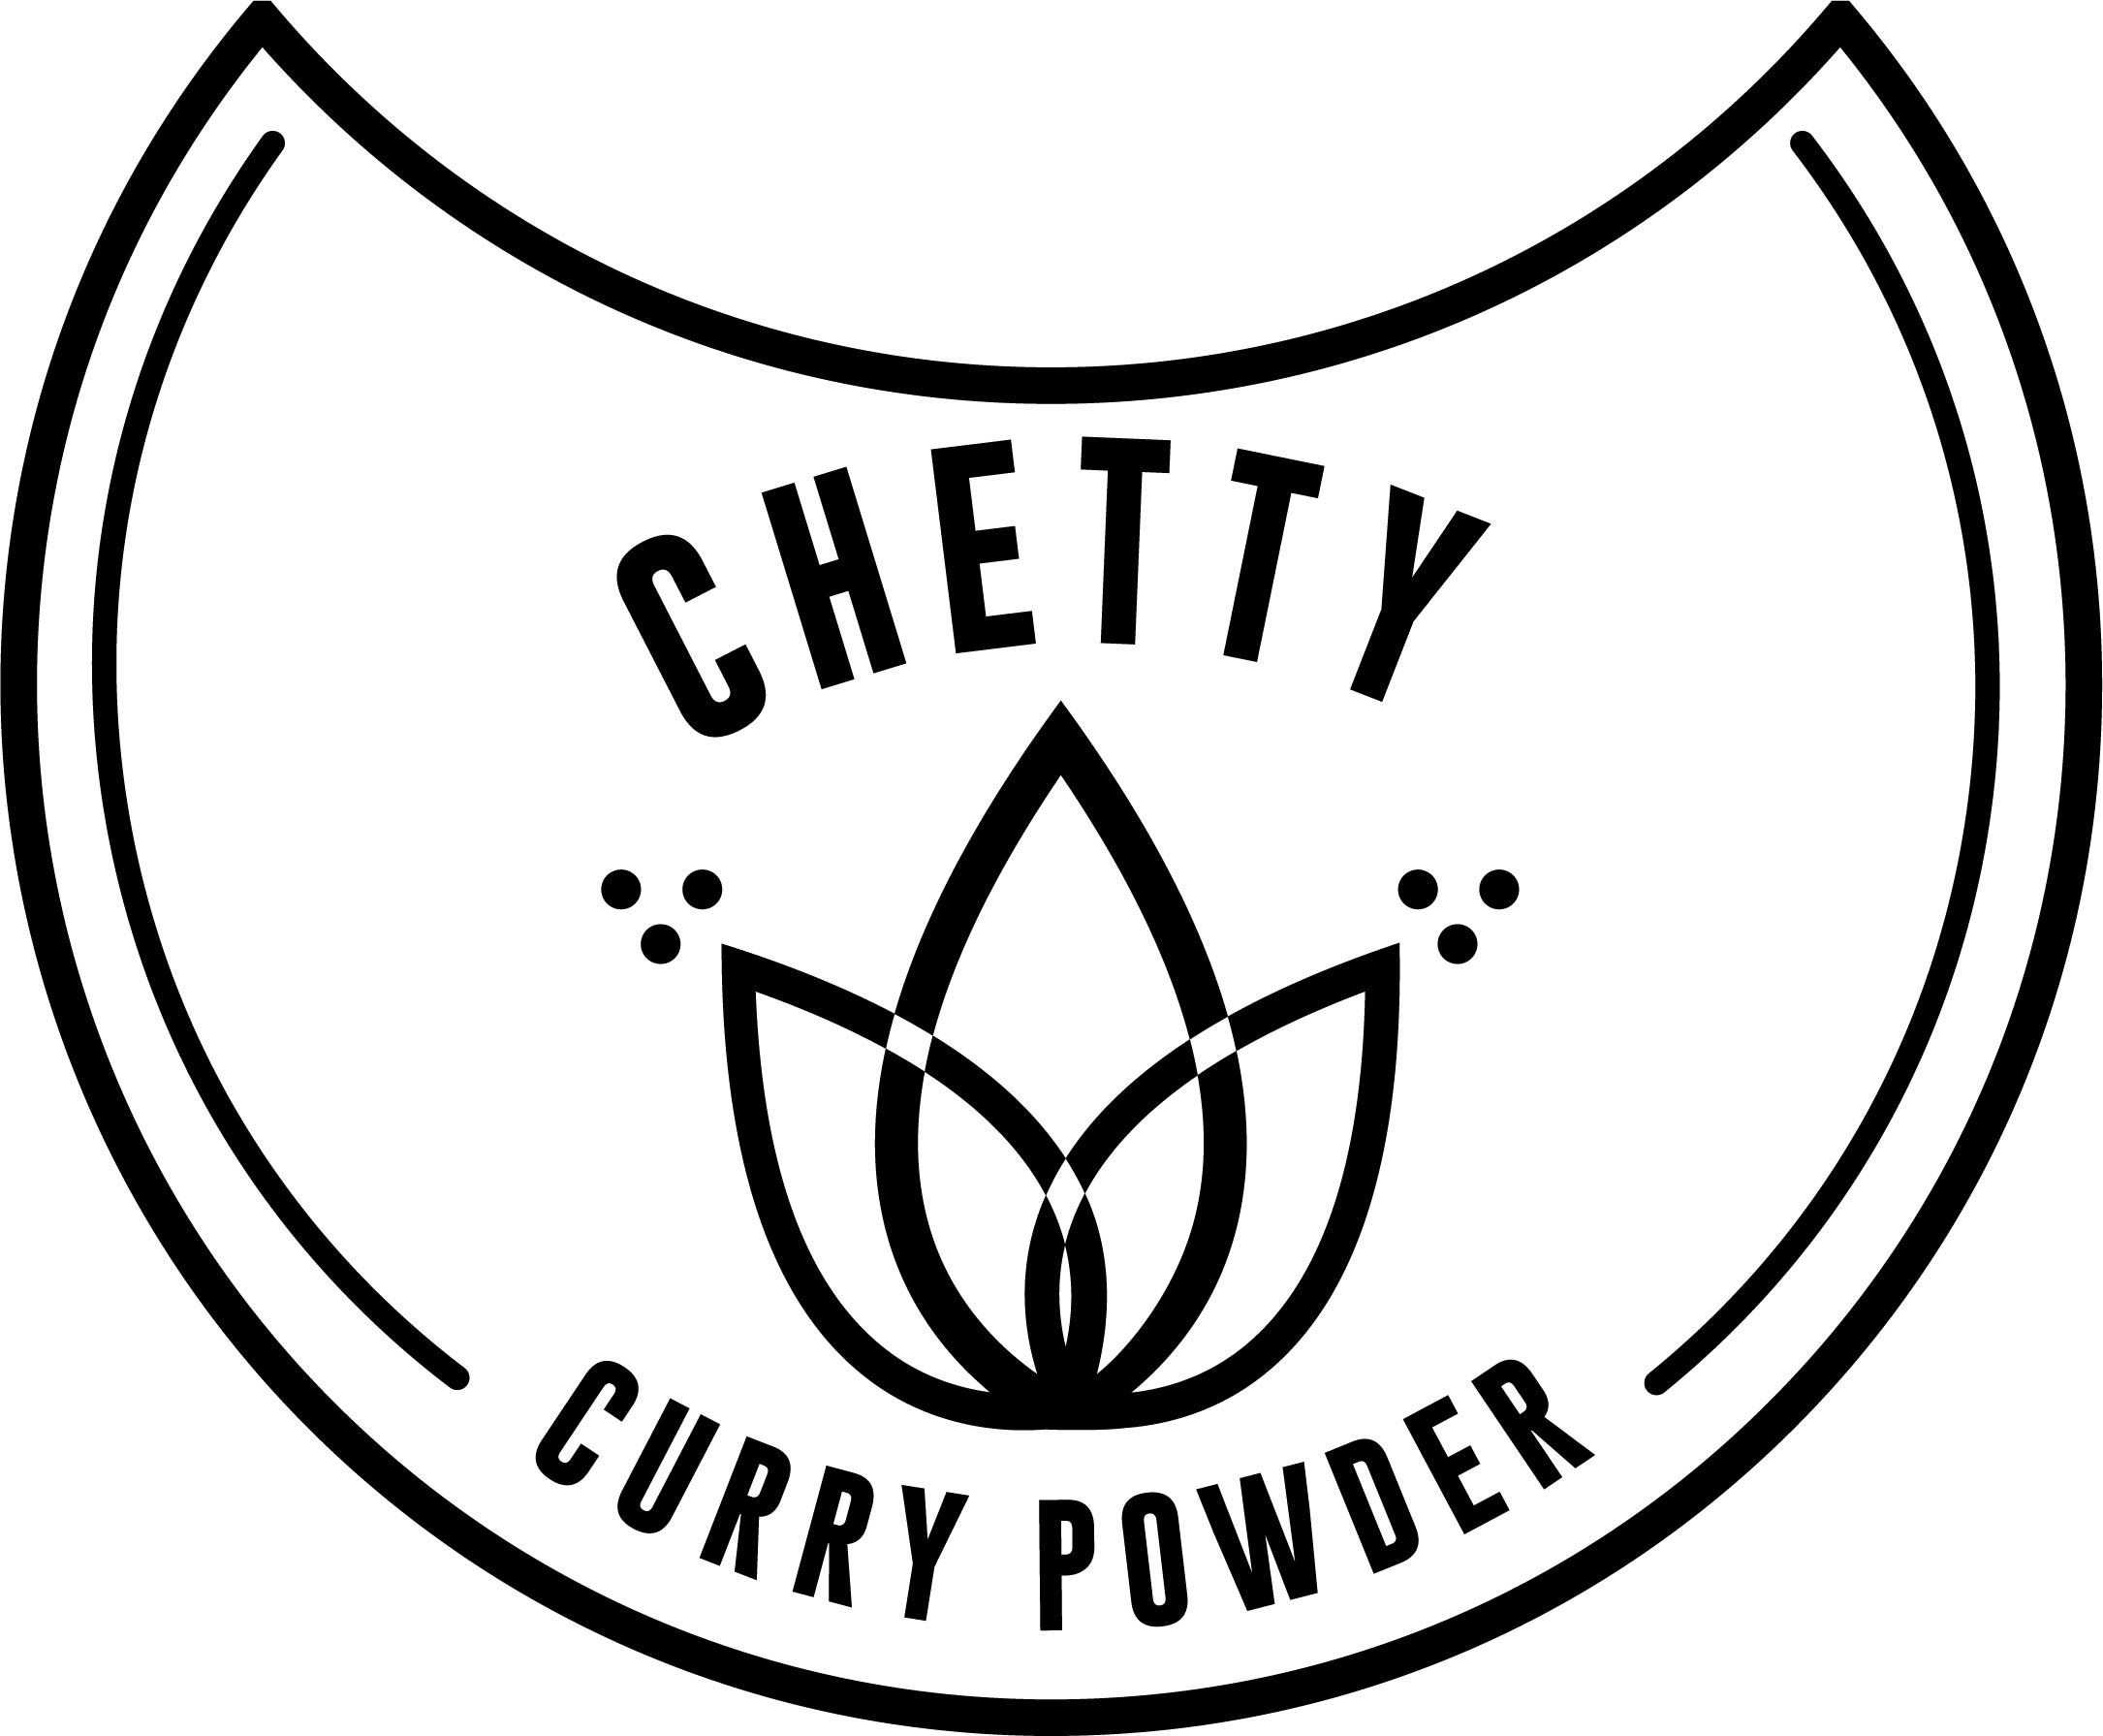 Chetty Curry Powder